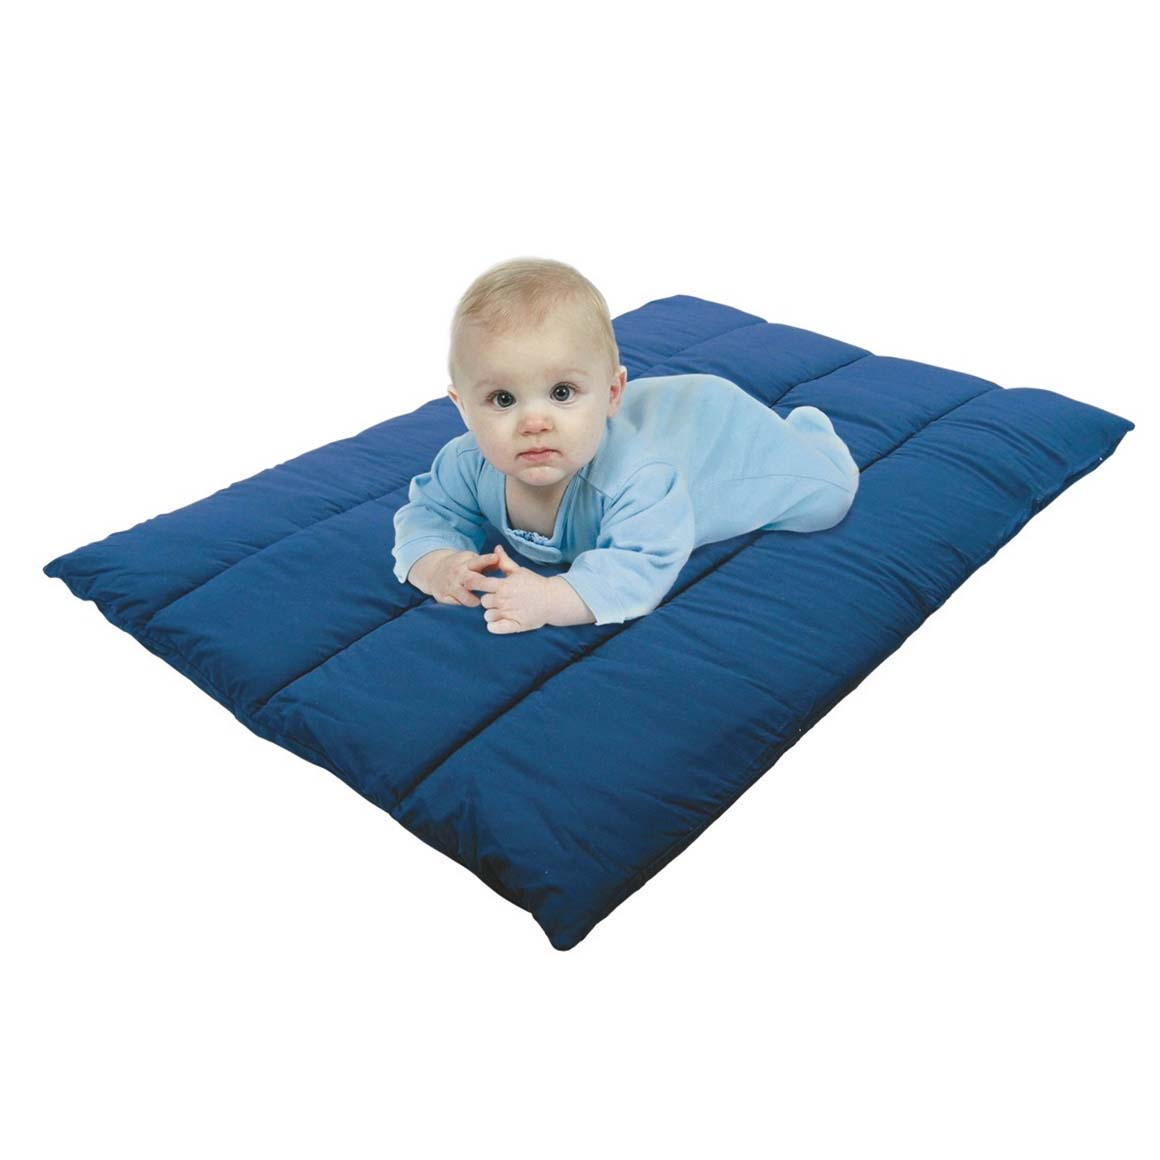 The Sleepover by Junippers - NAVY 77cm x 110cm | Trada Marketplace